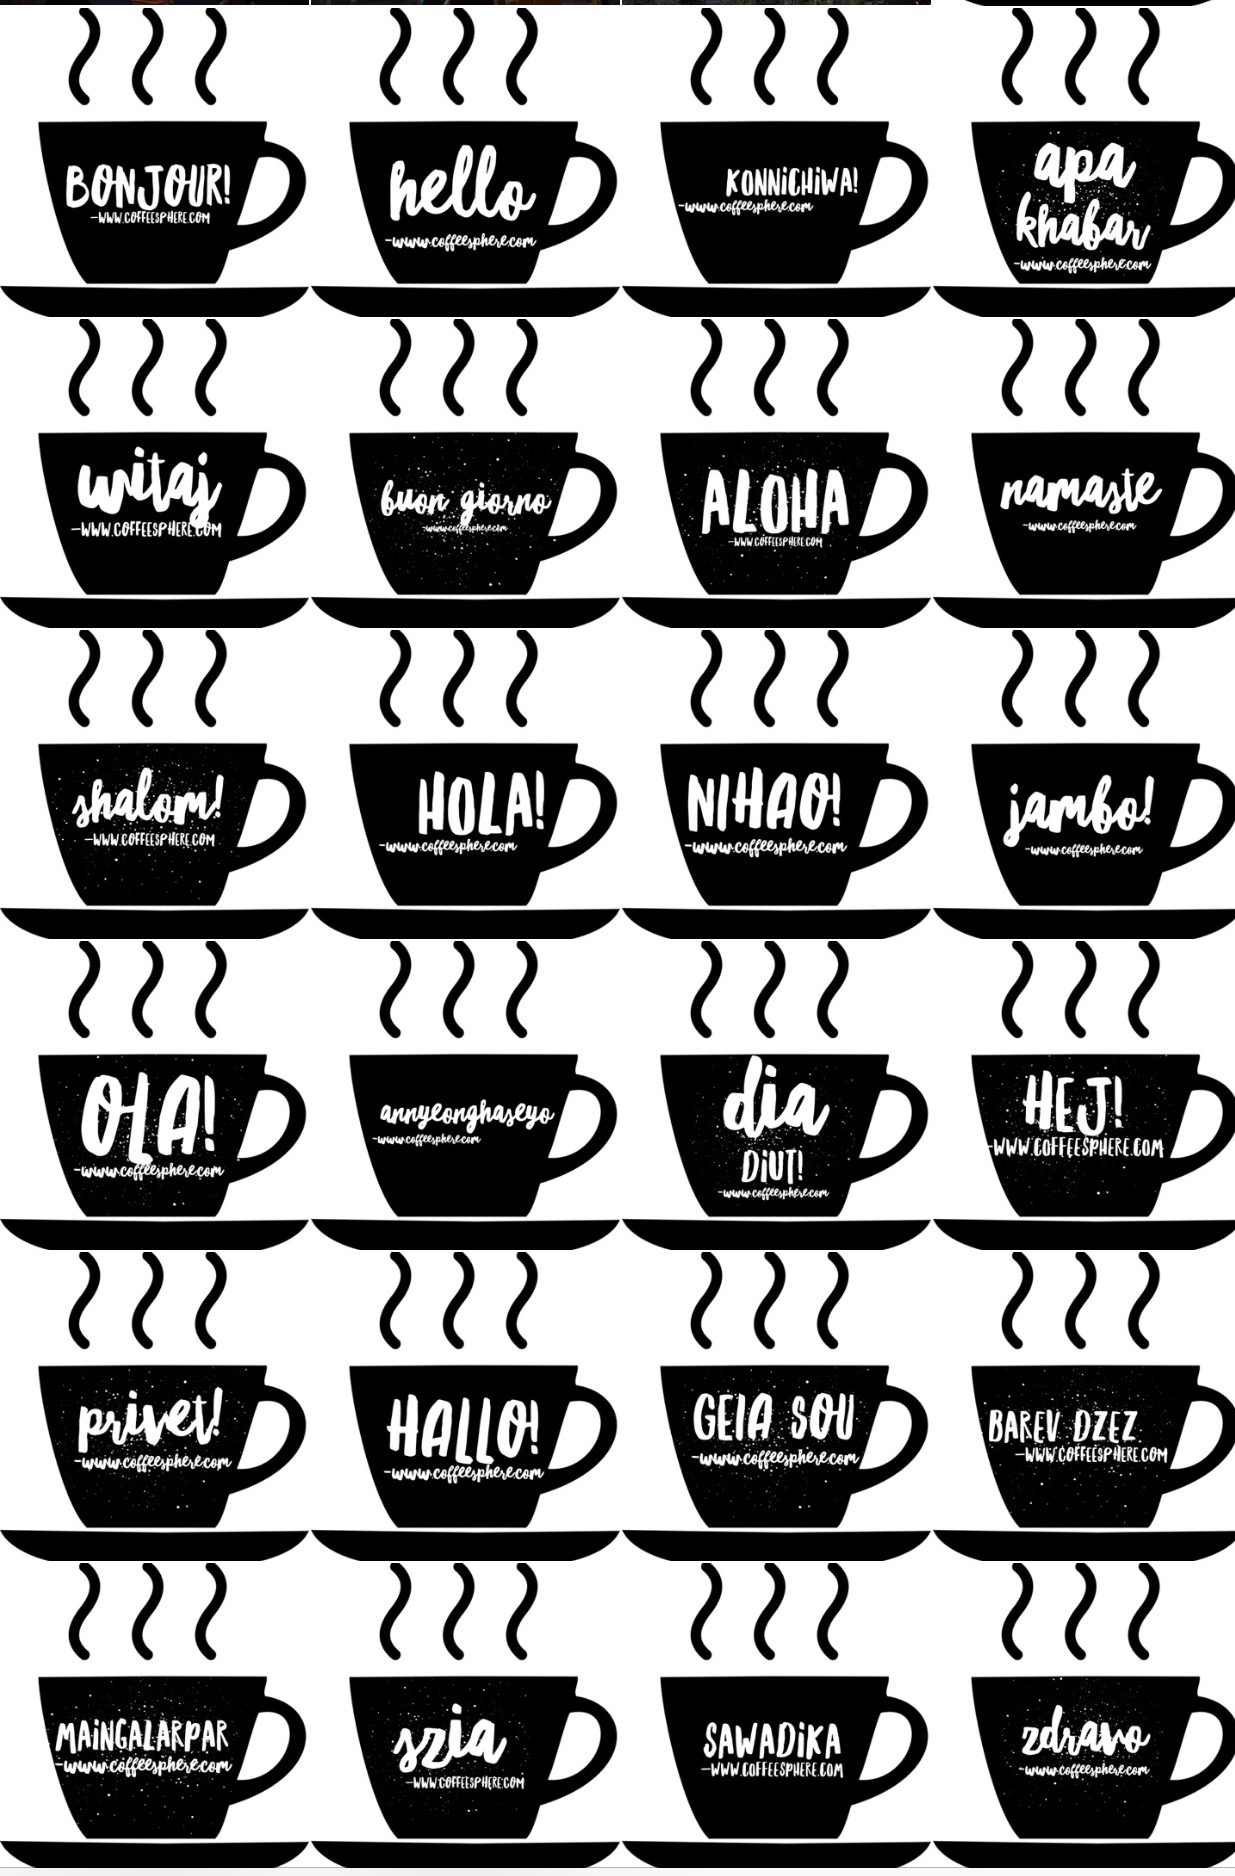 Say Hello In 25 Languages Coffeesphere